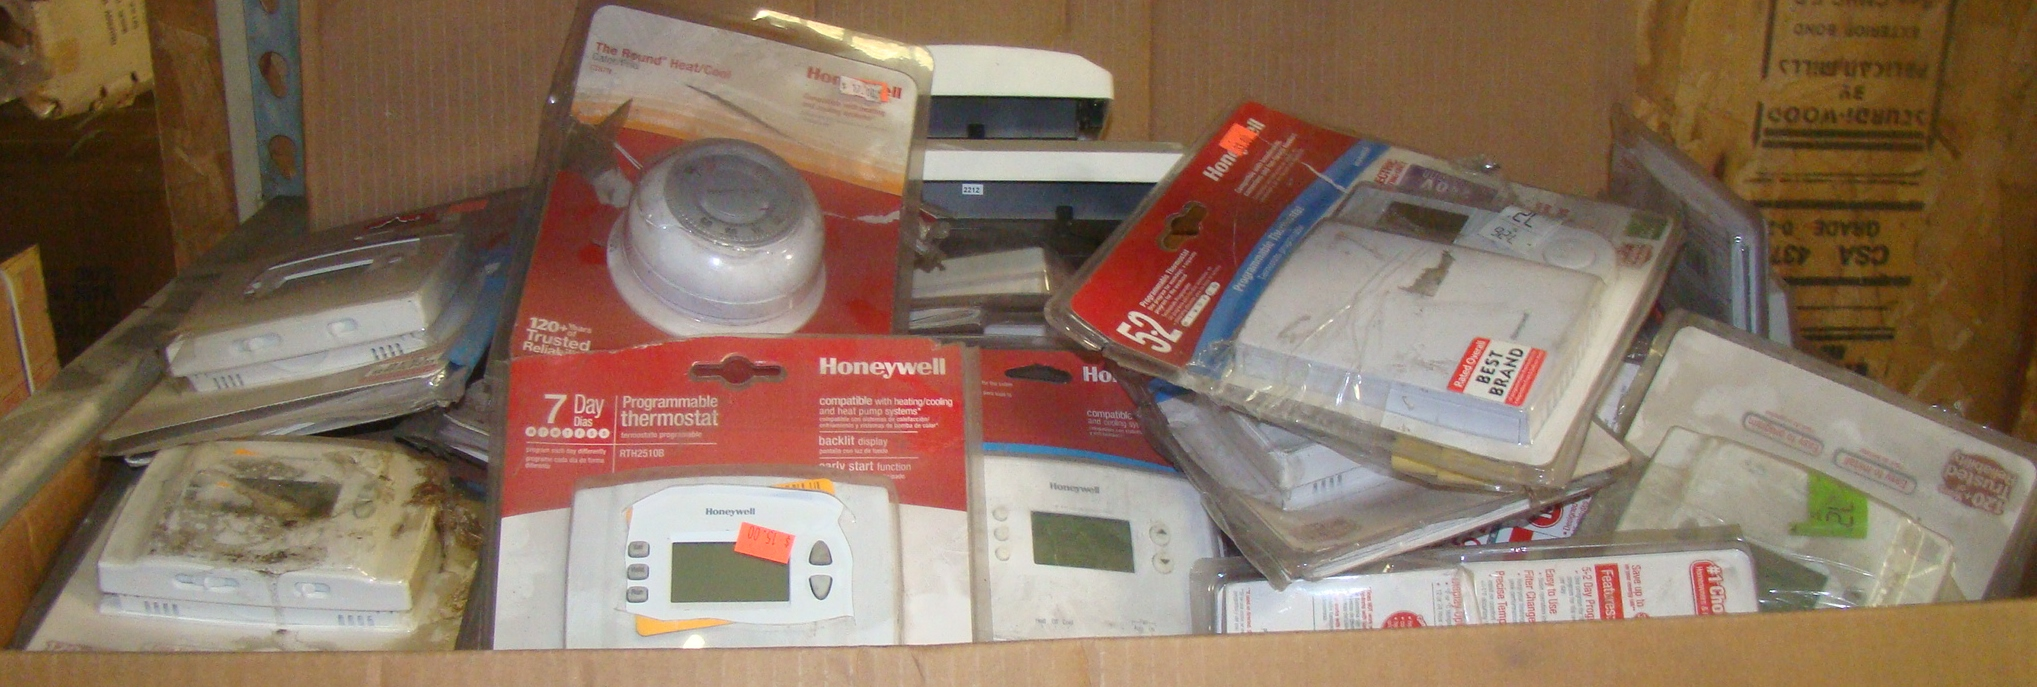 Lot 38 - Large box of thermostats